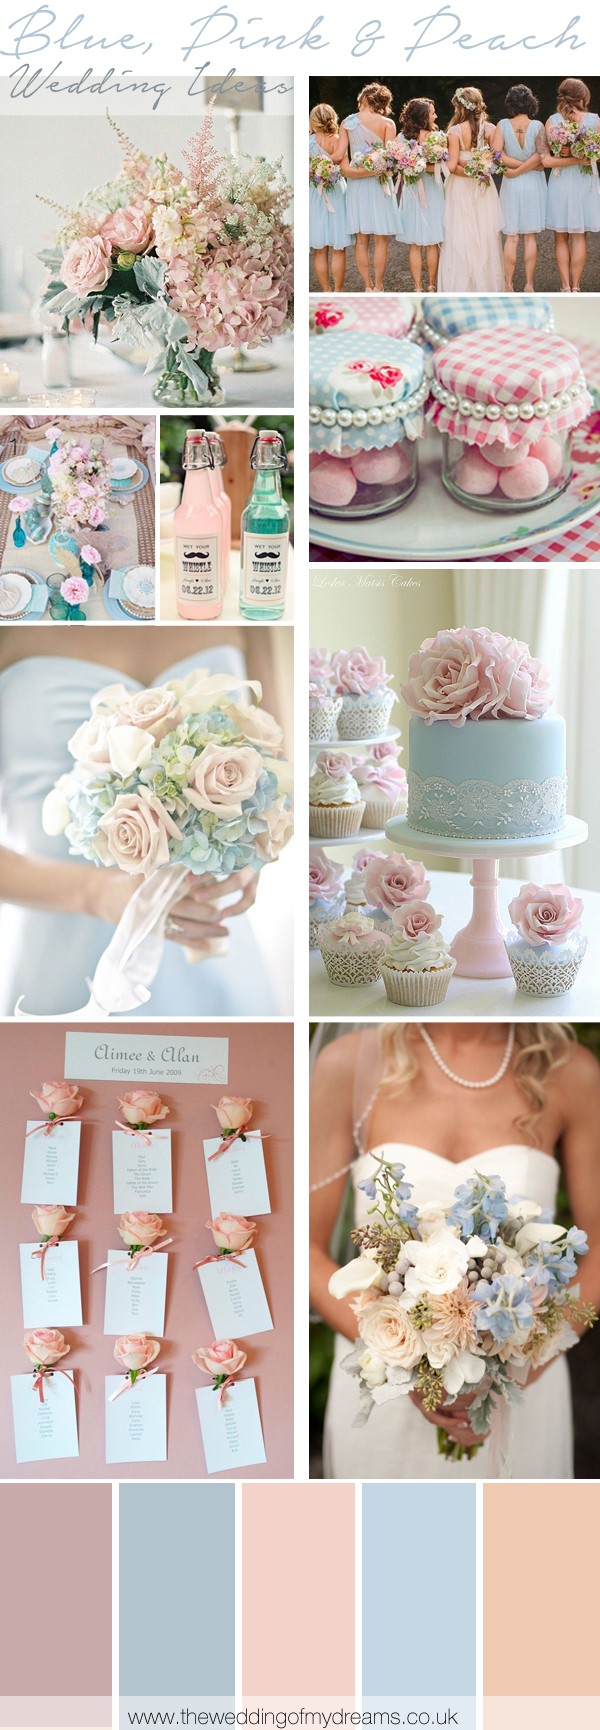 blue pink and peach wedding inspiration decorations